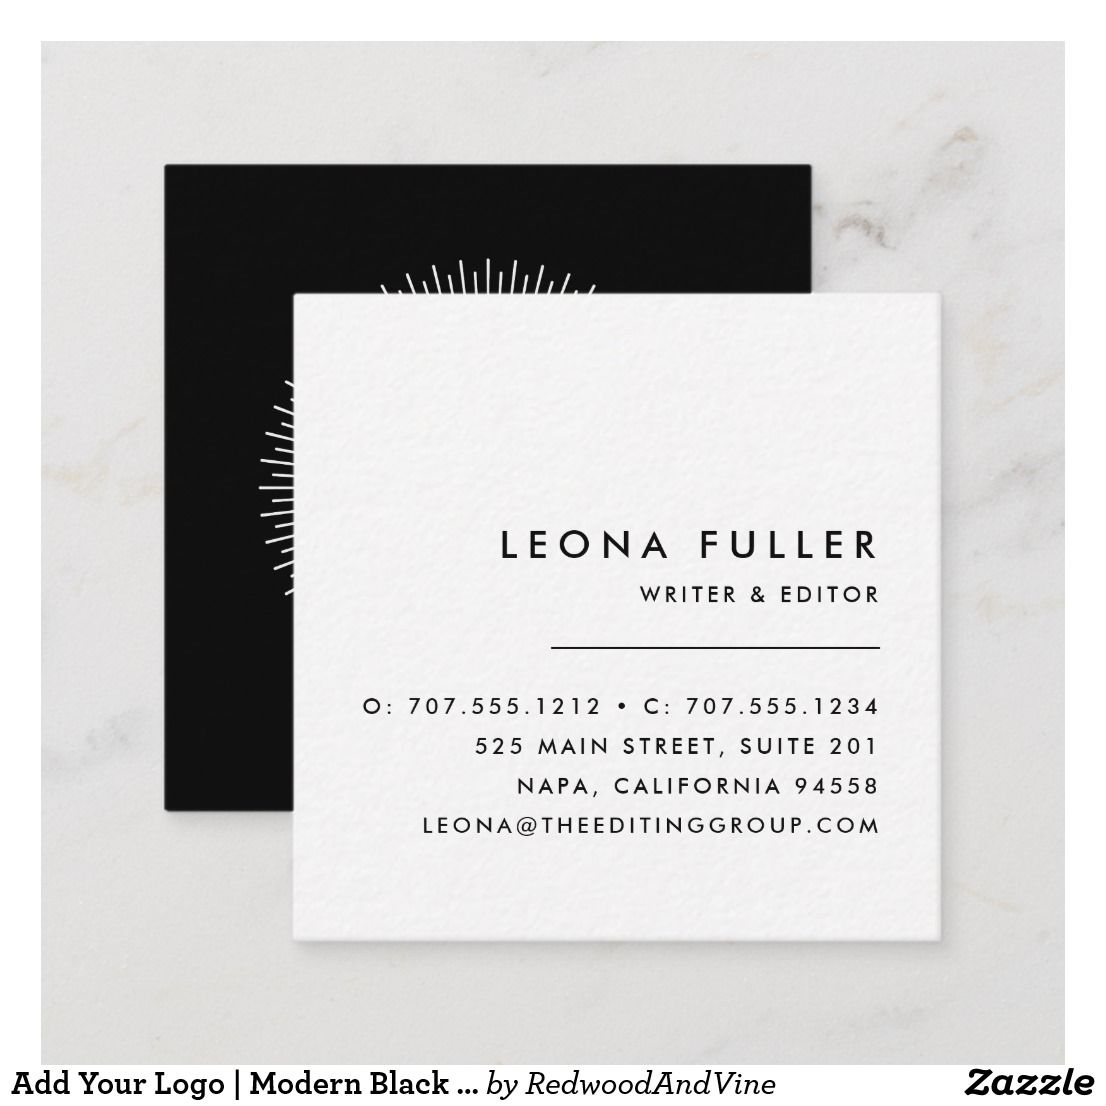 Add Your Logo Modern Black And White Square Business Card Zazzle Com Square Business Cards Design Square Business Card Minimalist Business Cards